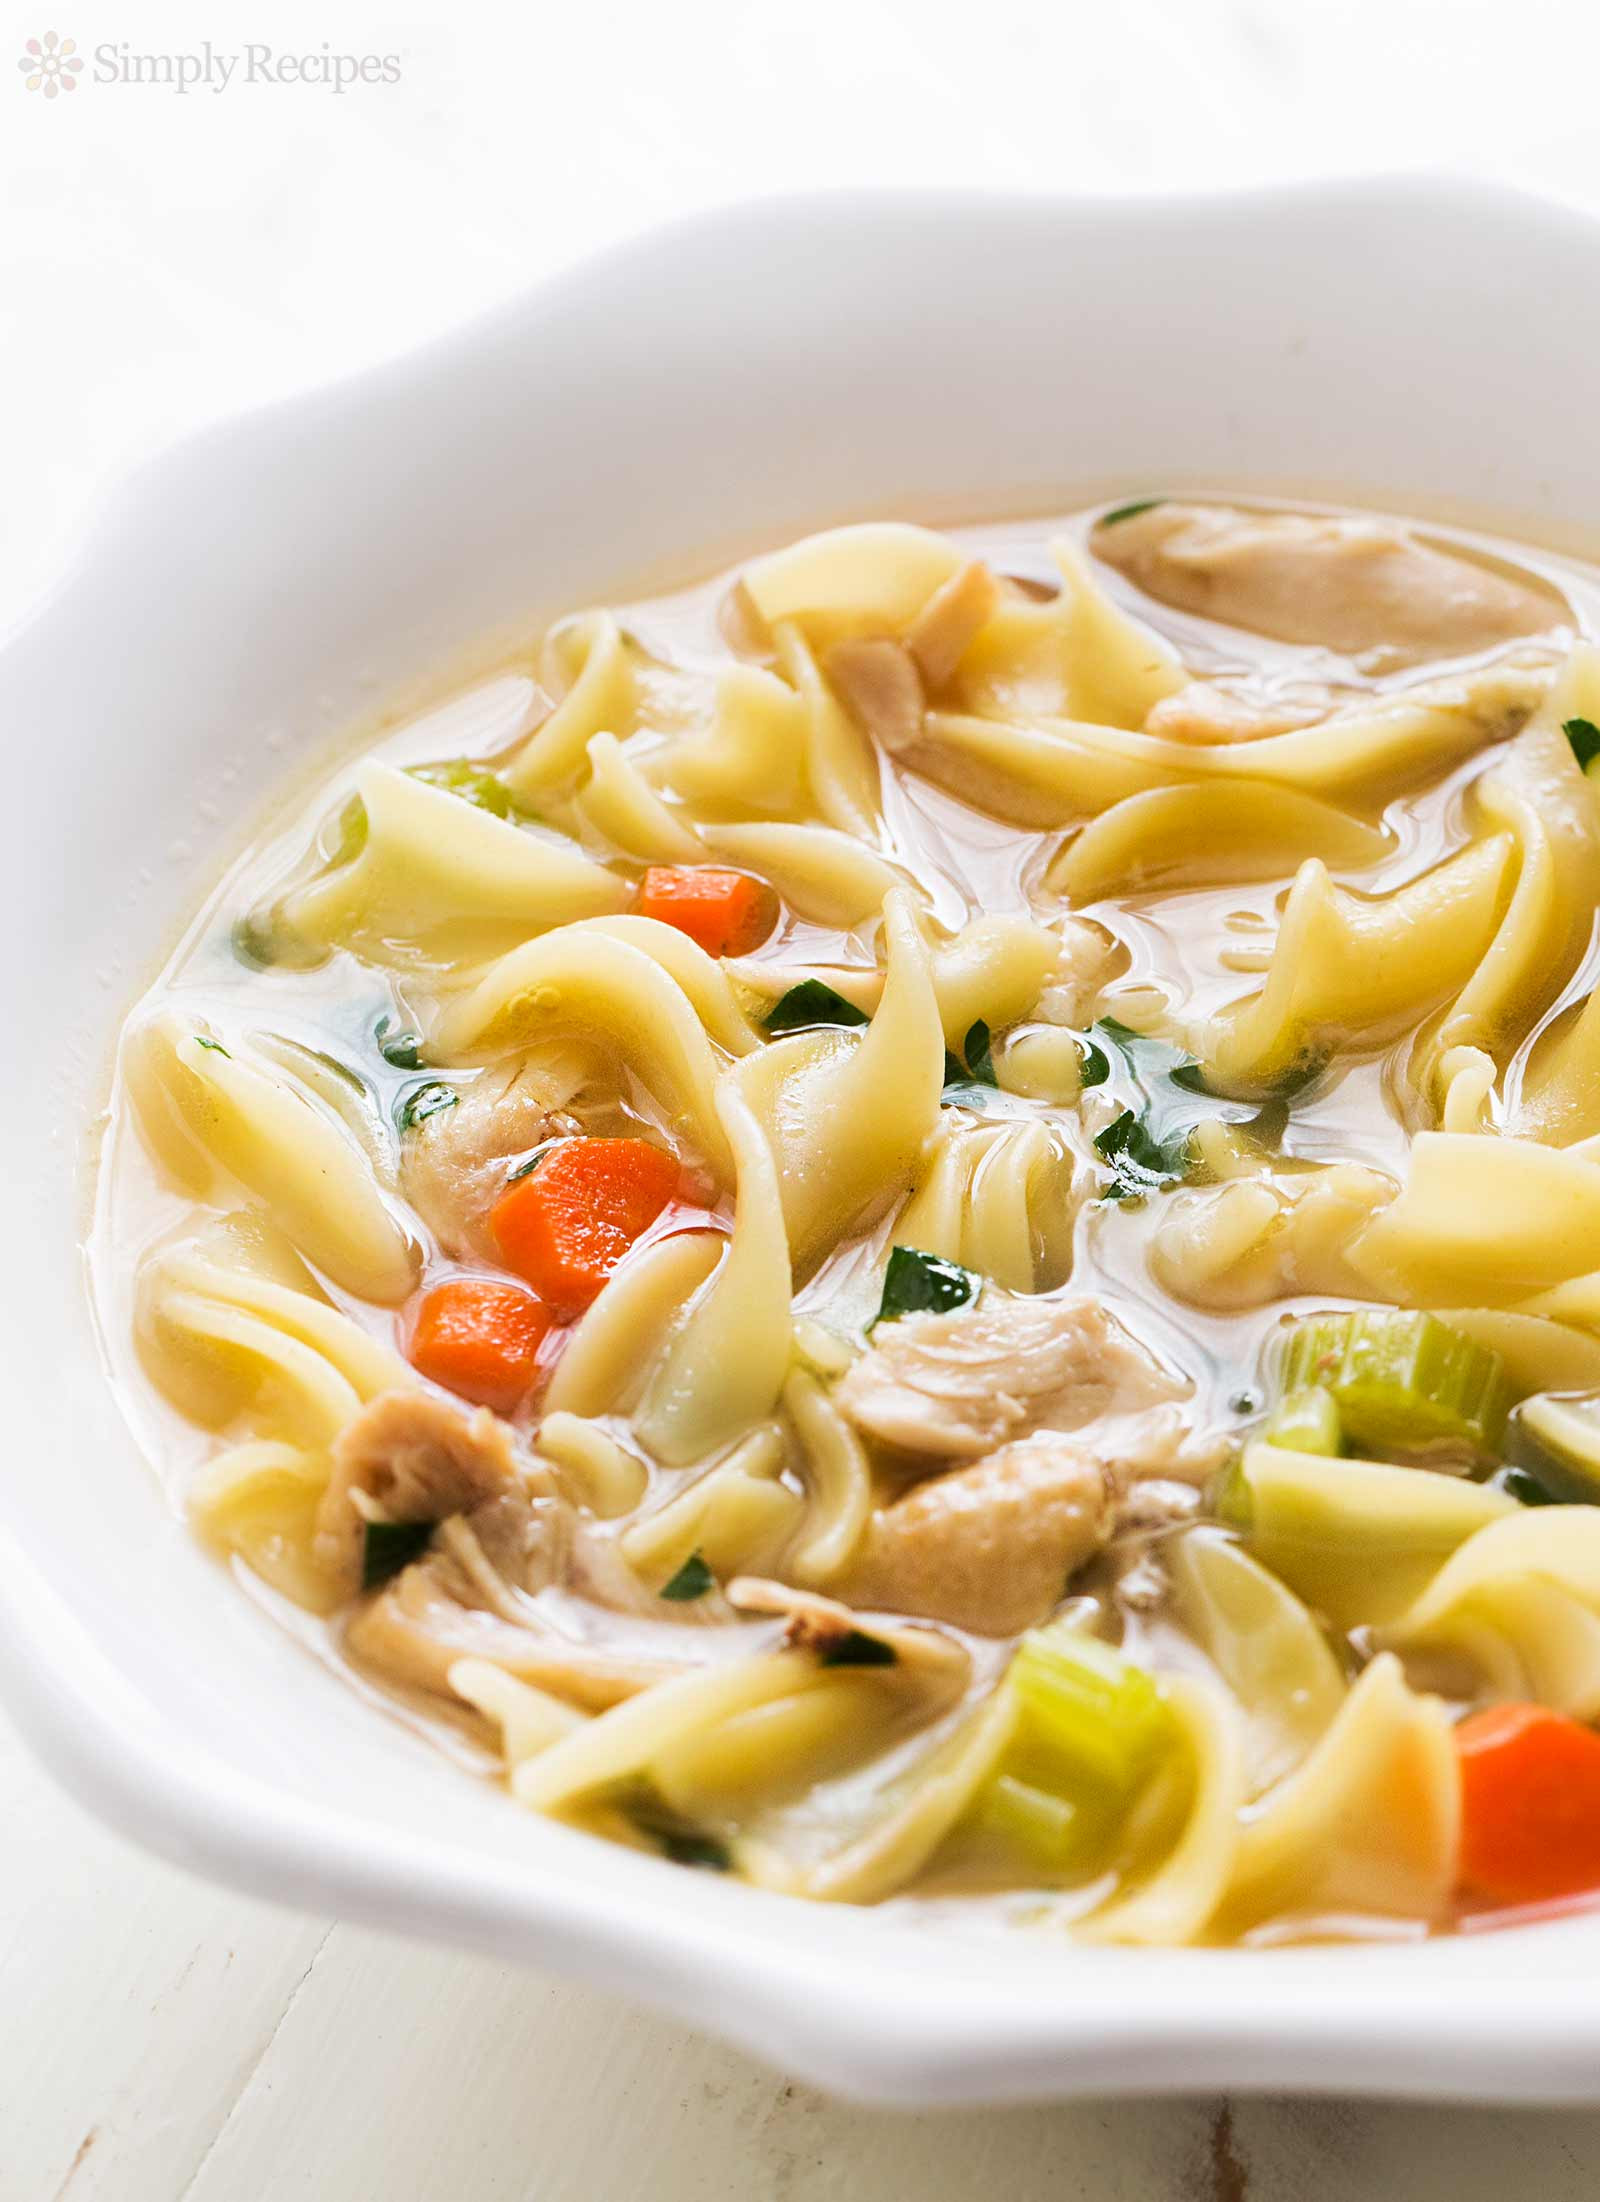 Best Chicken Noodle Soup Recipe  Homemade Chicken Noodle Soup Recipe